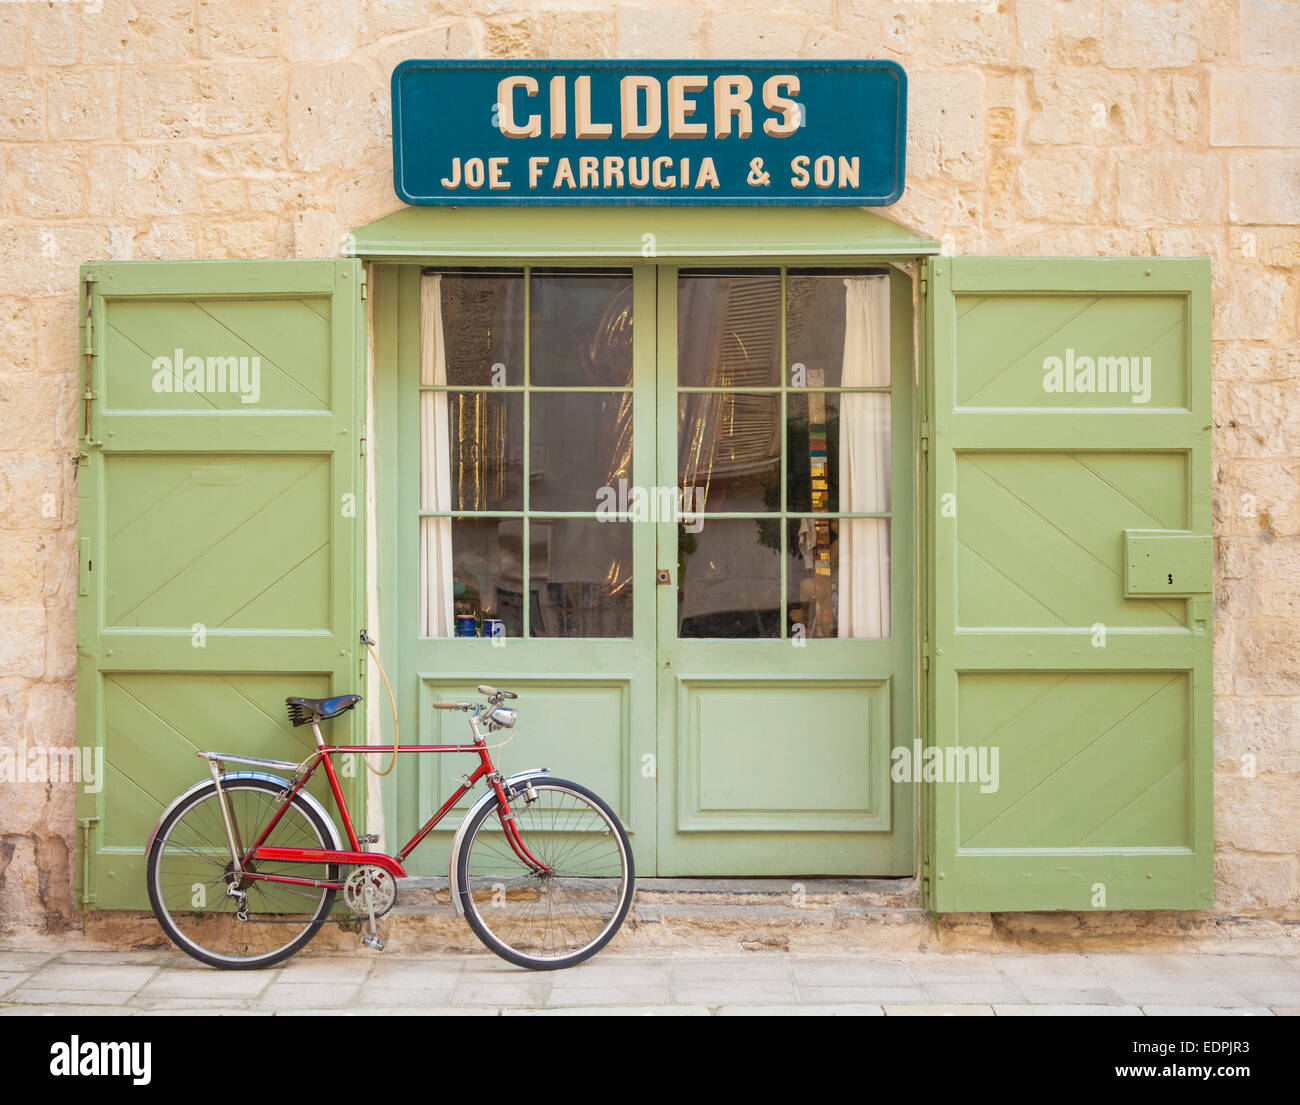 Retro Red Bicycle outside Green doors of traditional Gilders shop Mdina Malta EU Europe - Stock Image